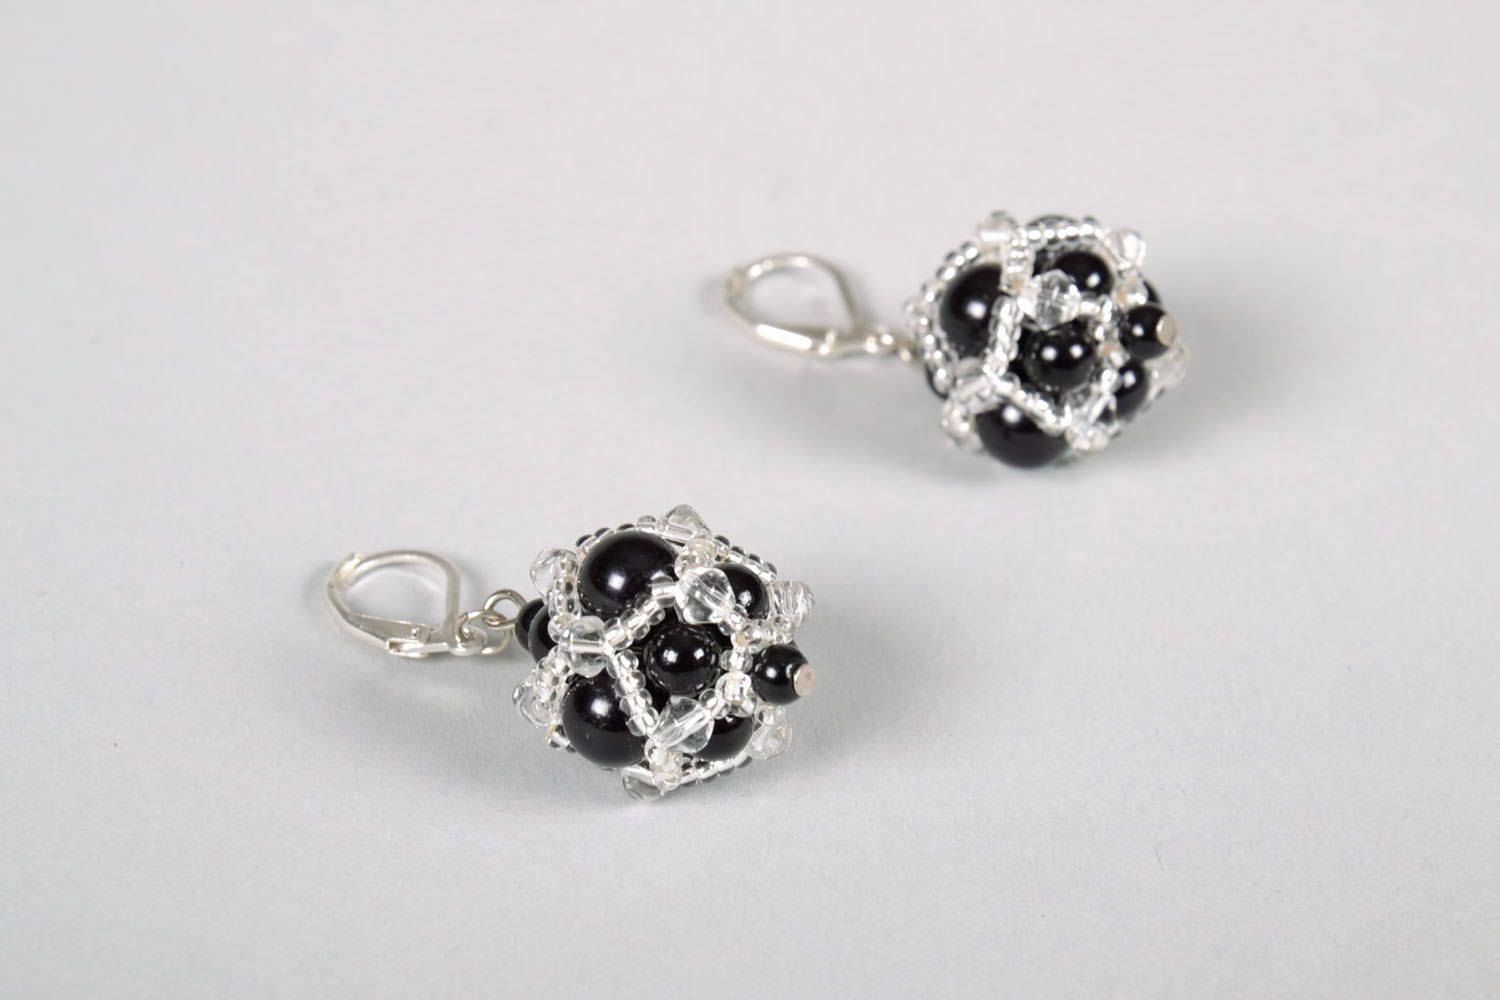 Evening earrings with black beads photo 3